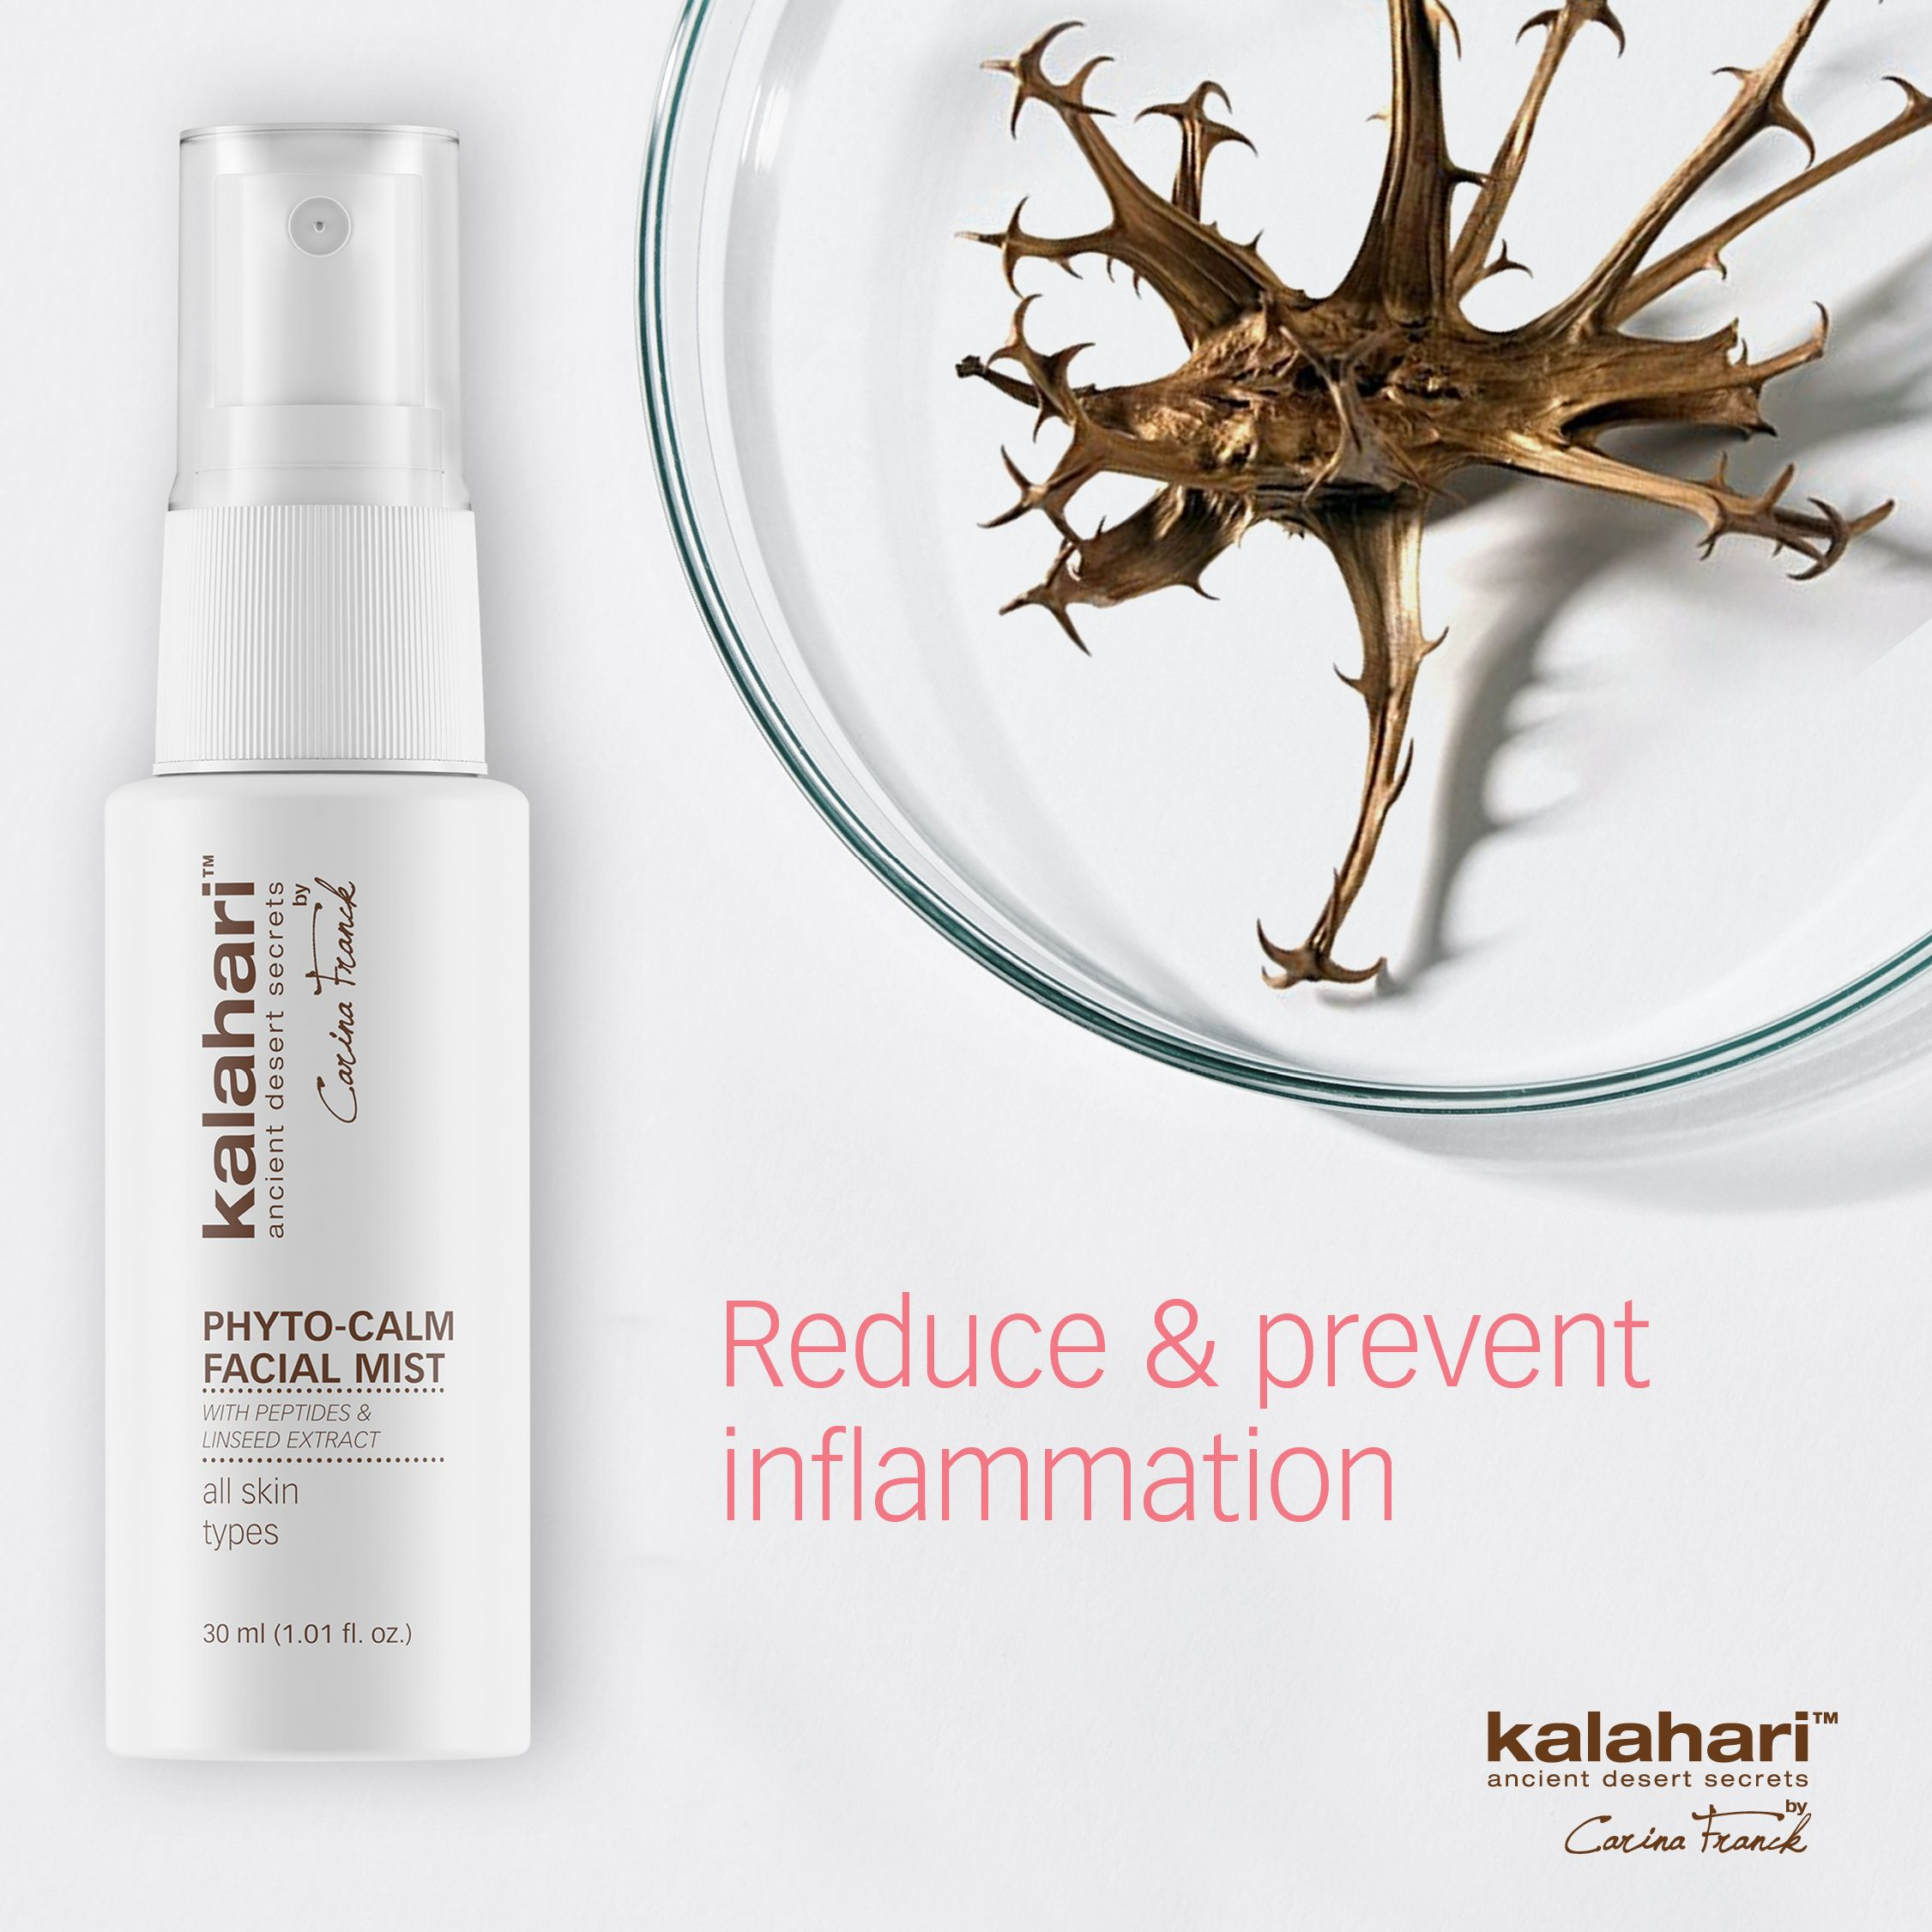 Protect The Skin From Free Radicals Professional Skin Care Products Skin Detoxification Skin Care Solutions